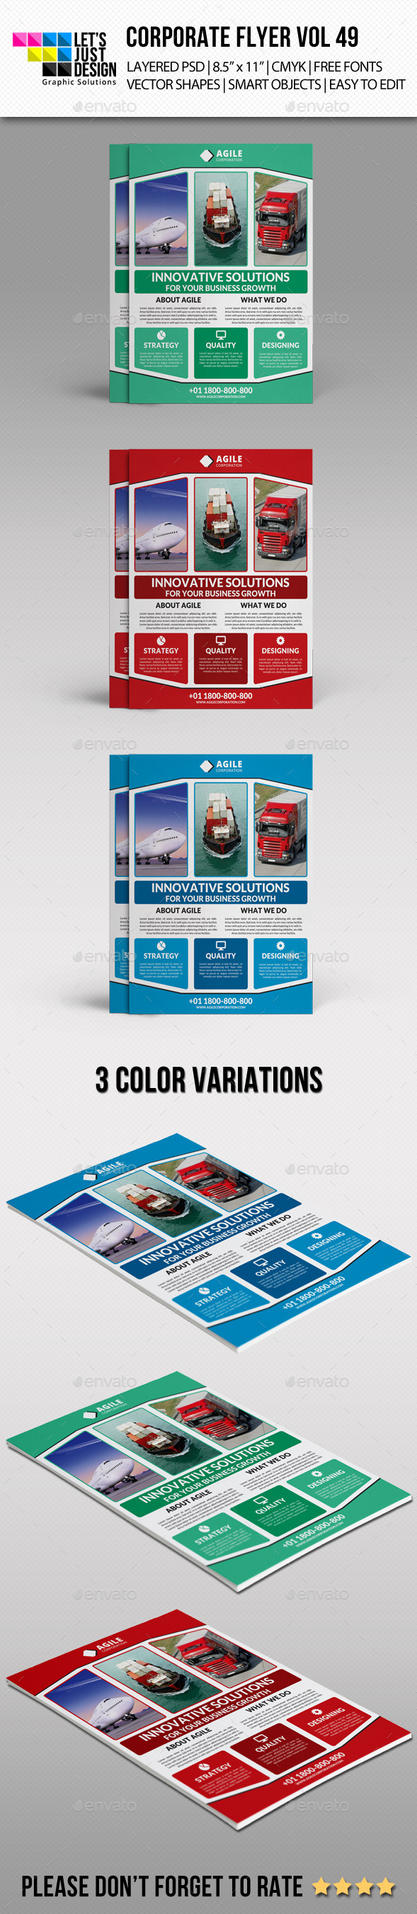 Corporate Flyer Template Vol 49 by jasonmendes